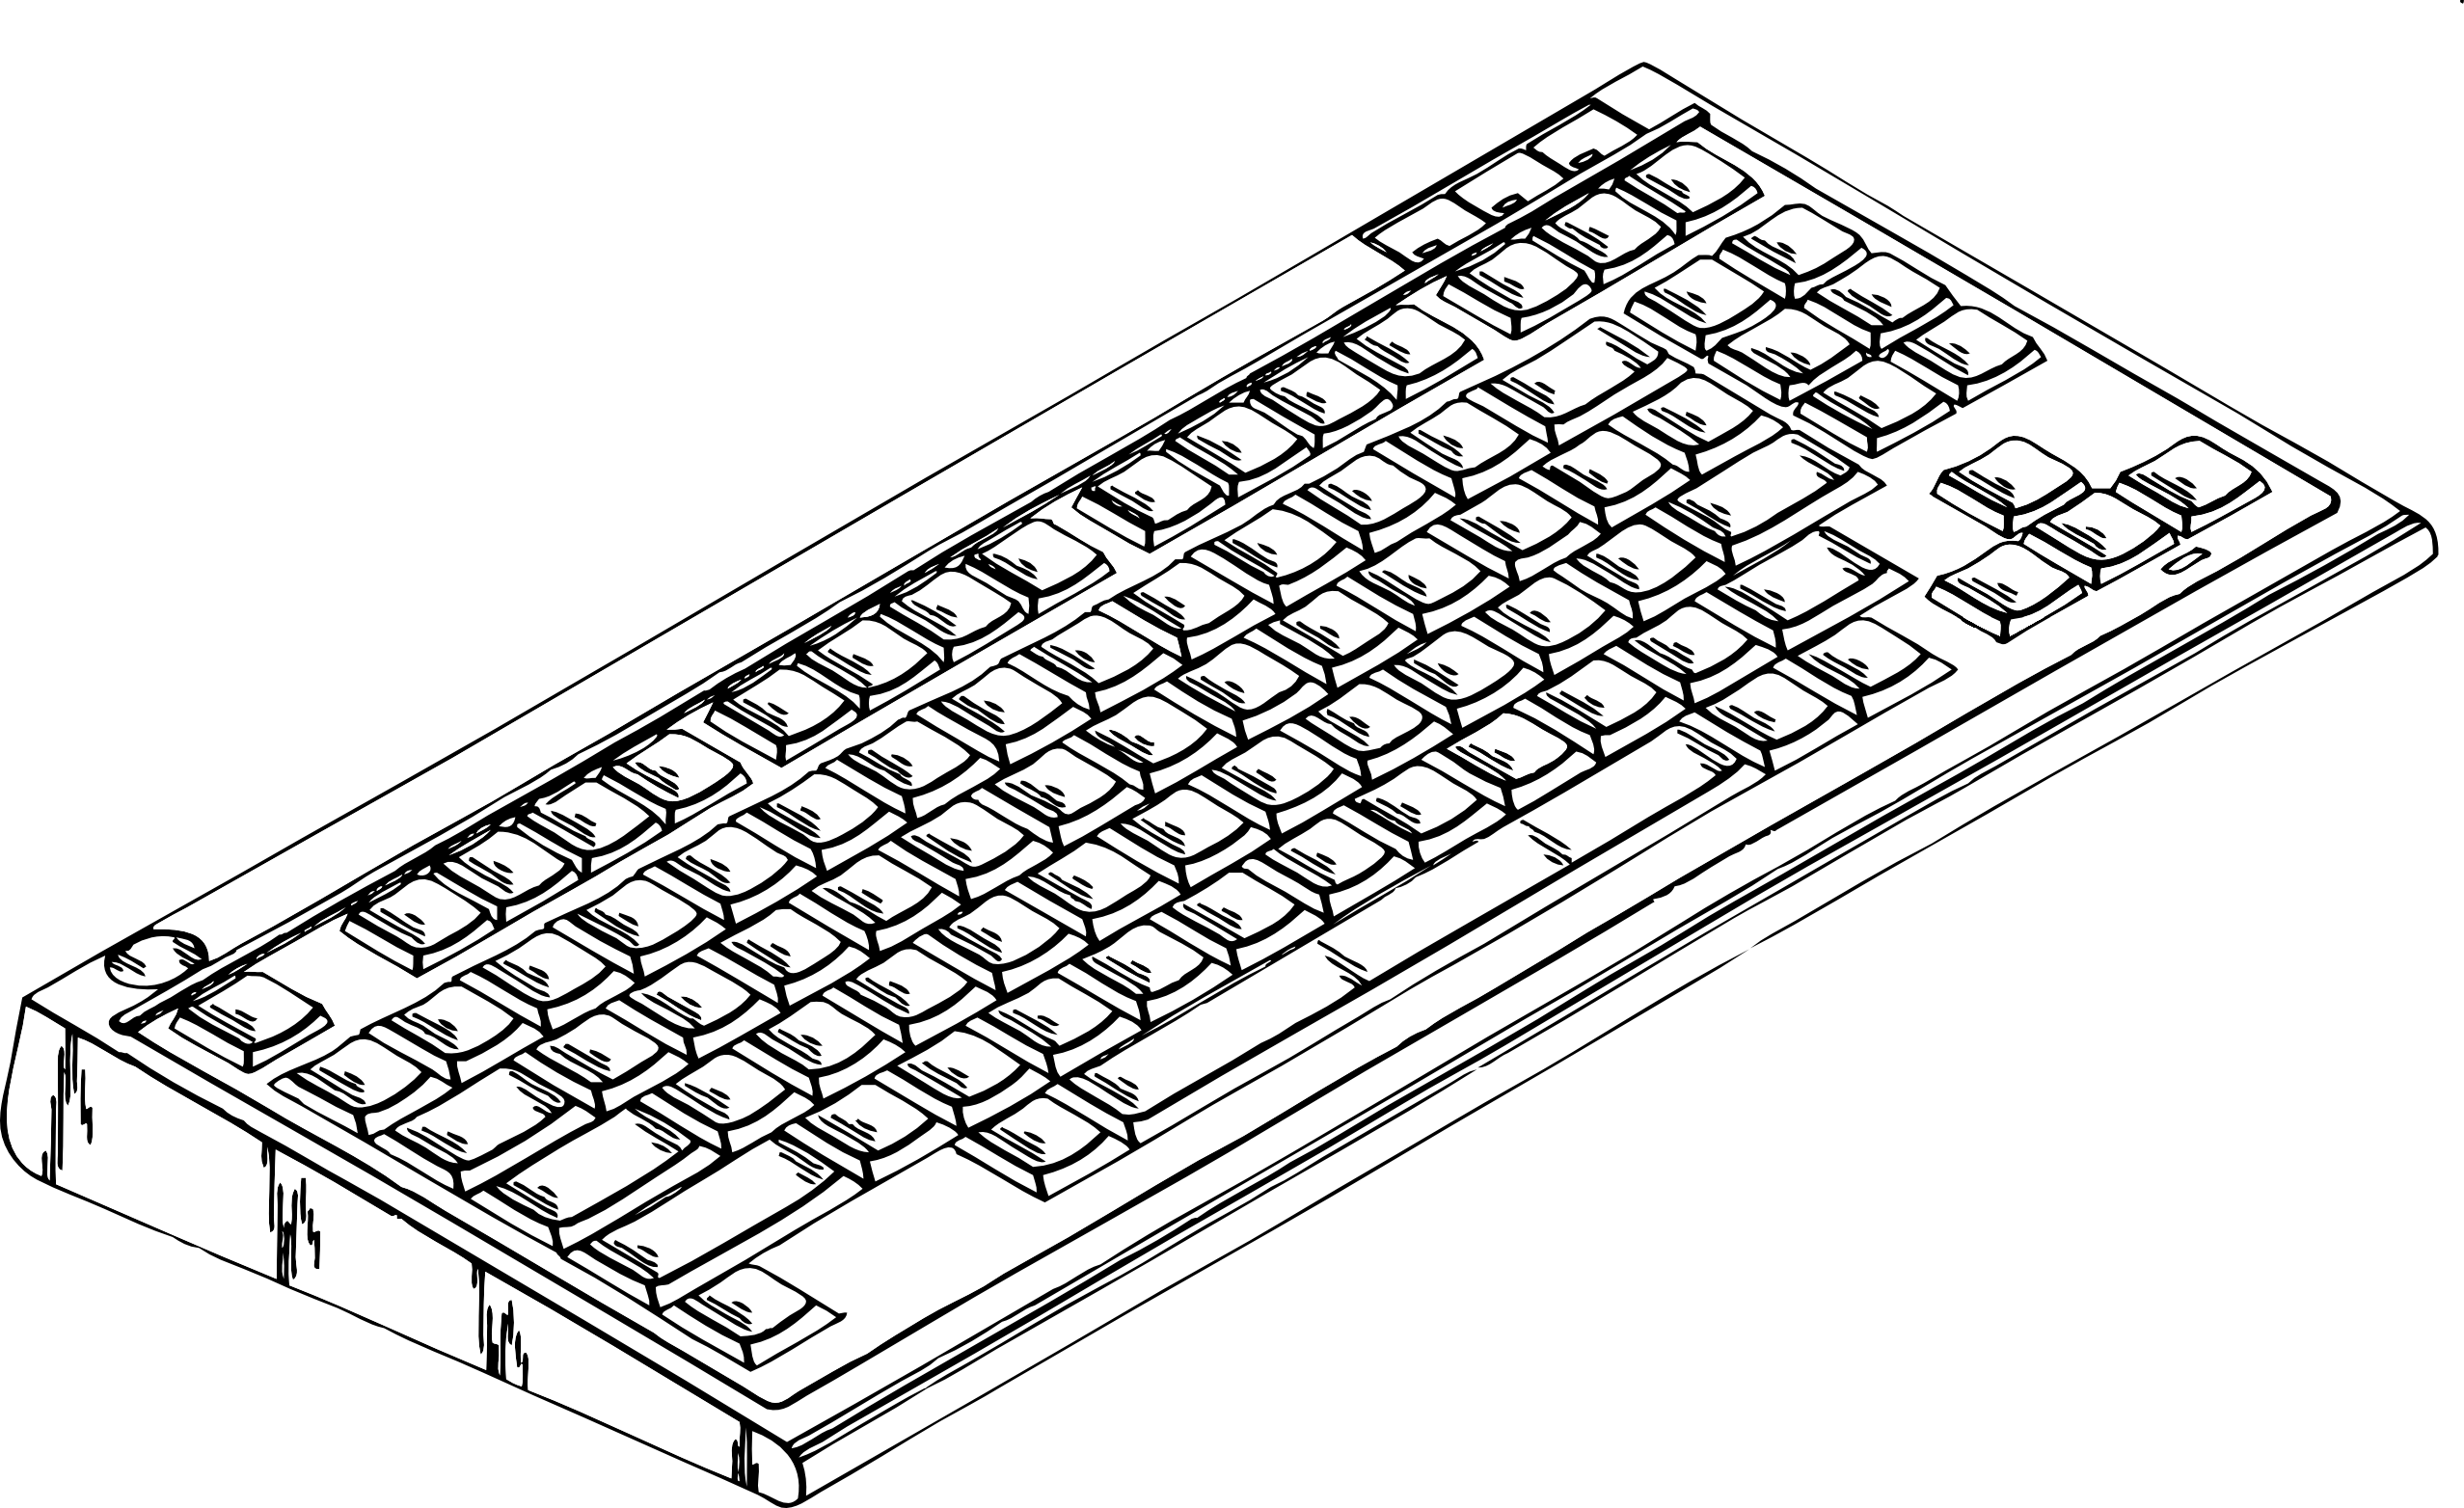 Clipart picture of computer keyboard picture free stock Keyboard And Mouse Black And White Clipart - Clipart Kid picture free stock